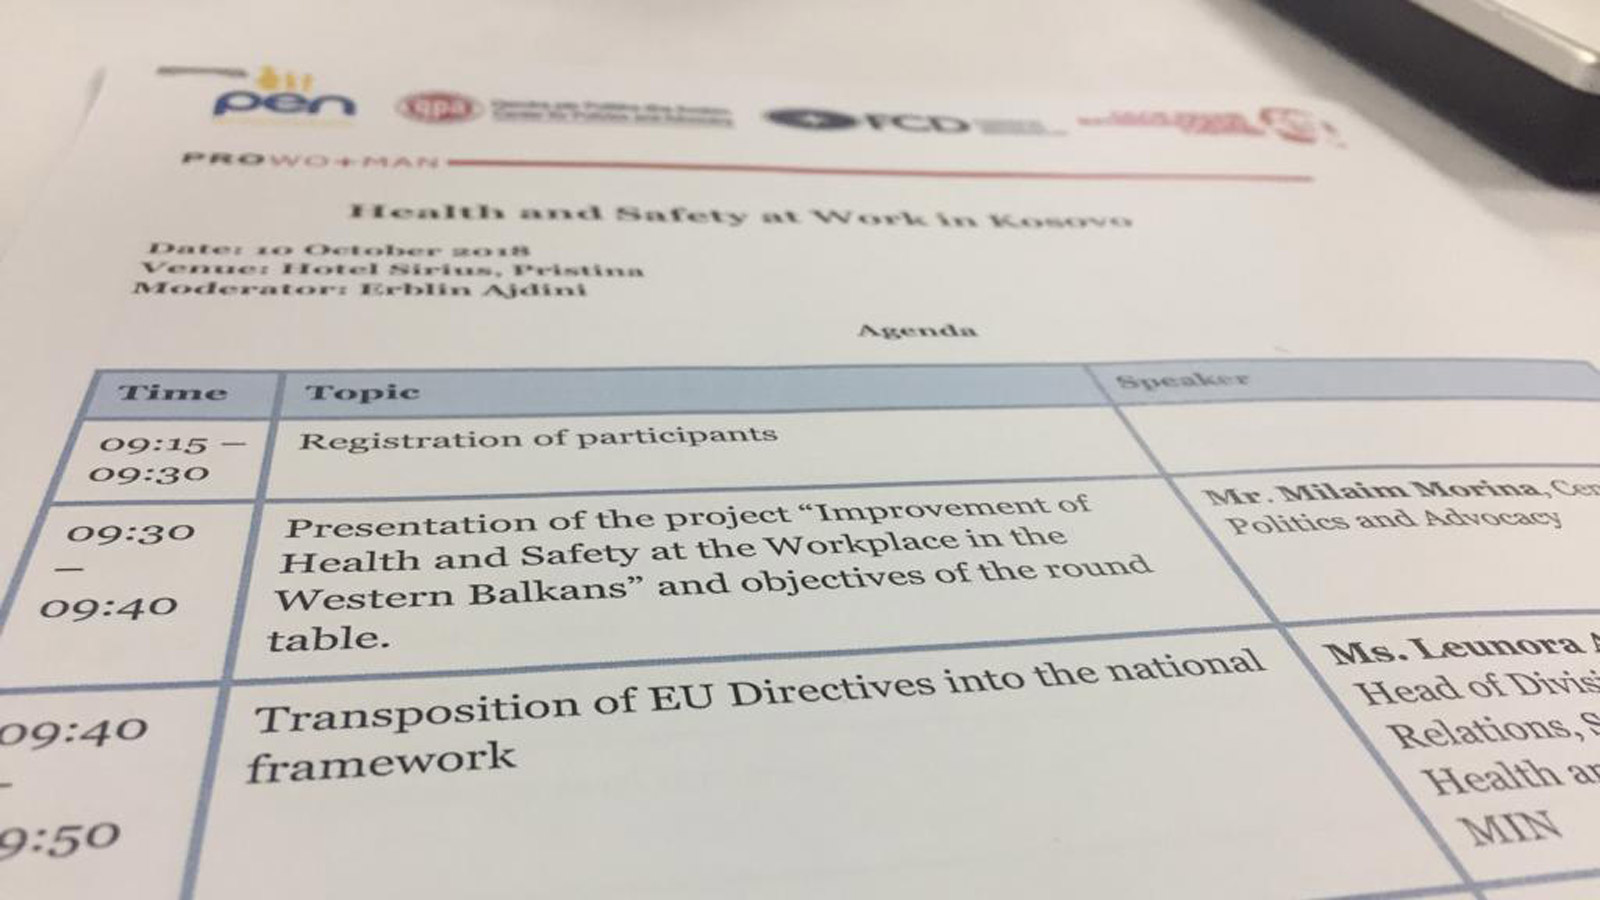 Towards Improved Health and Safety at Work in the Western Balkans